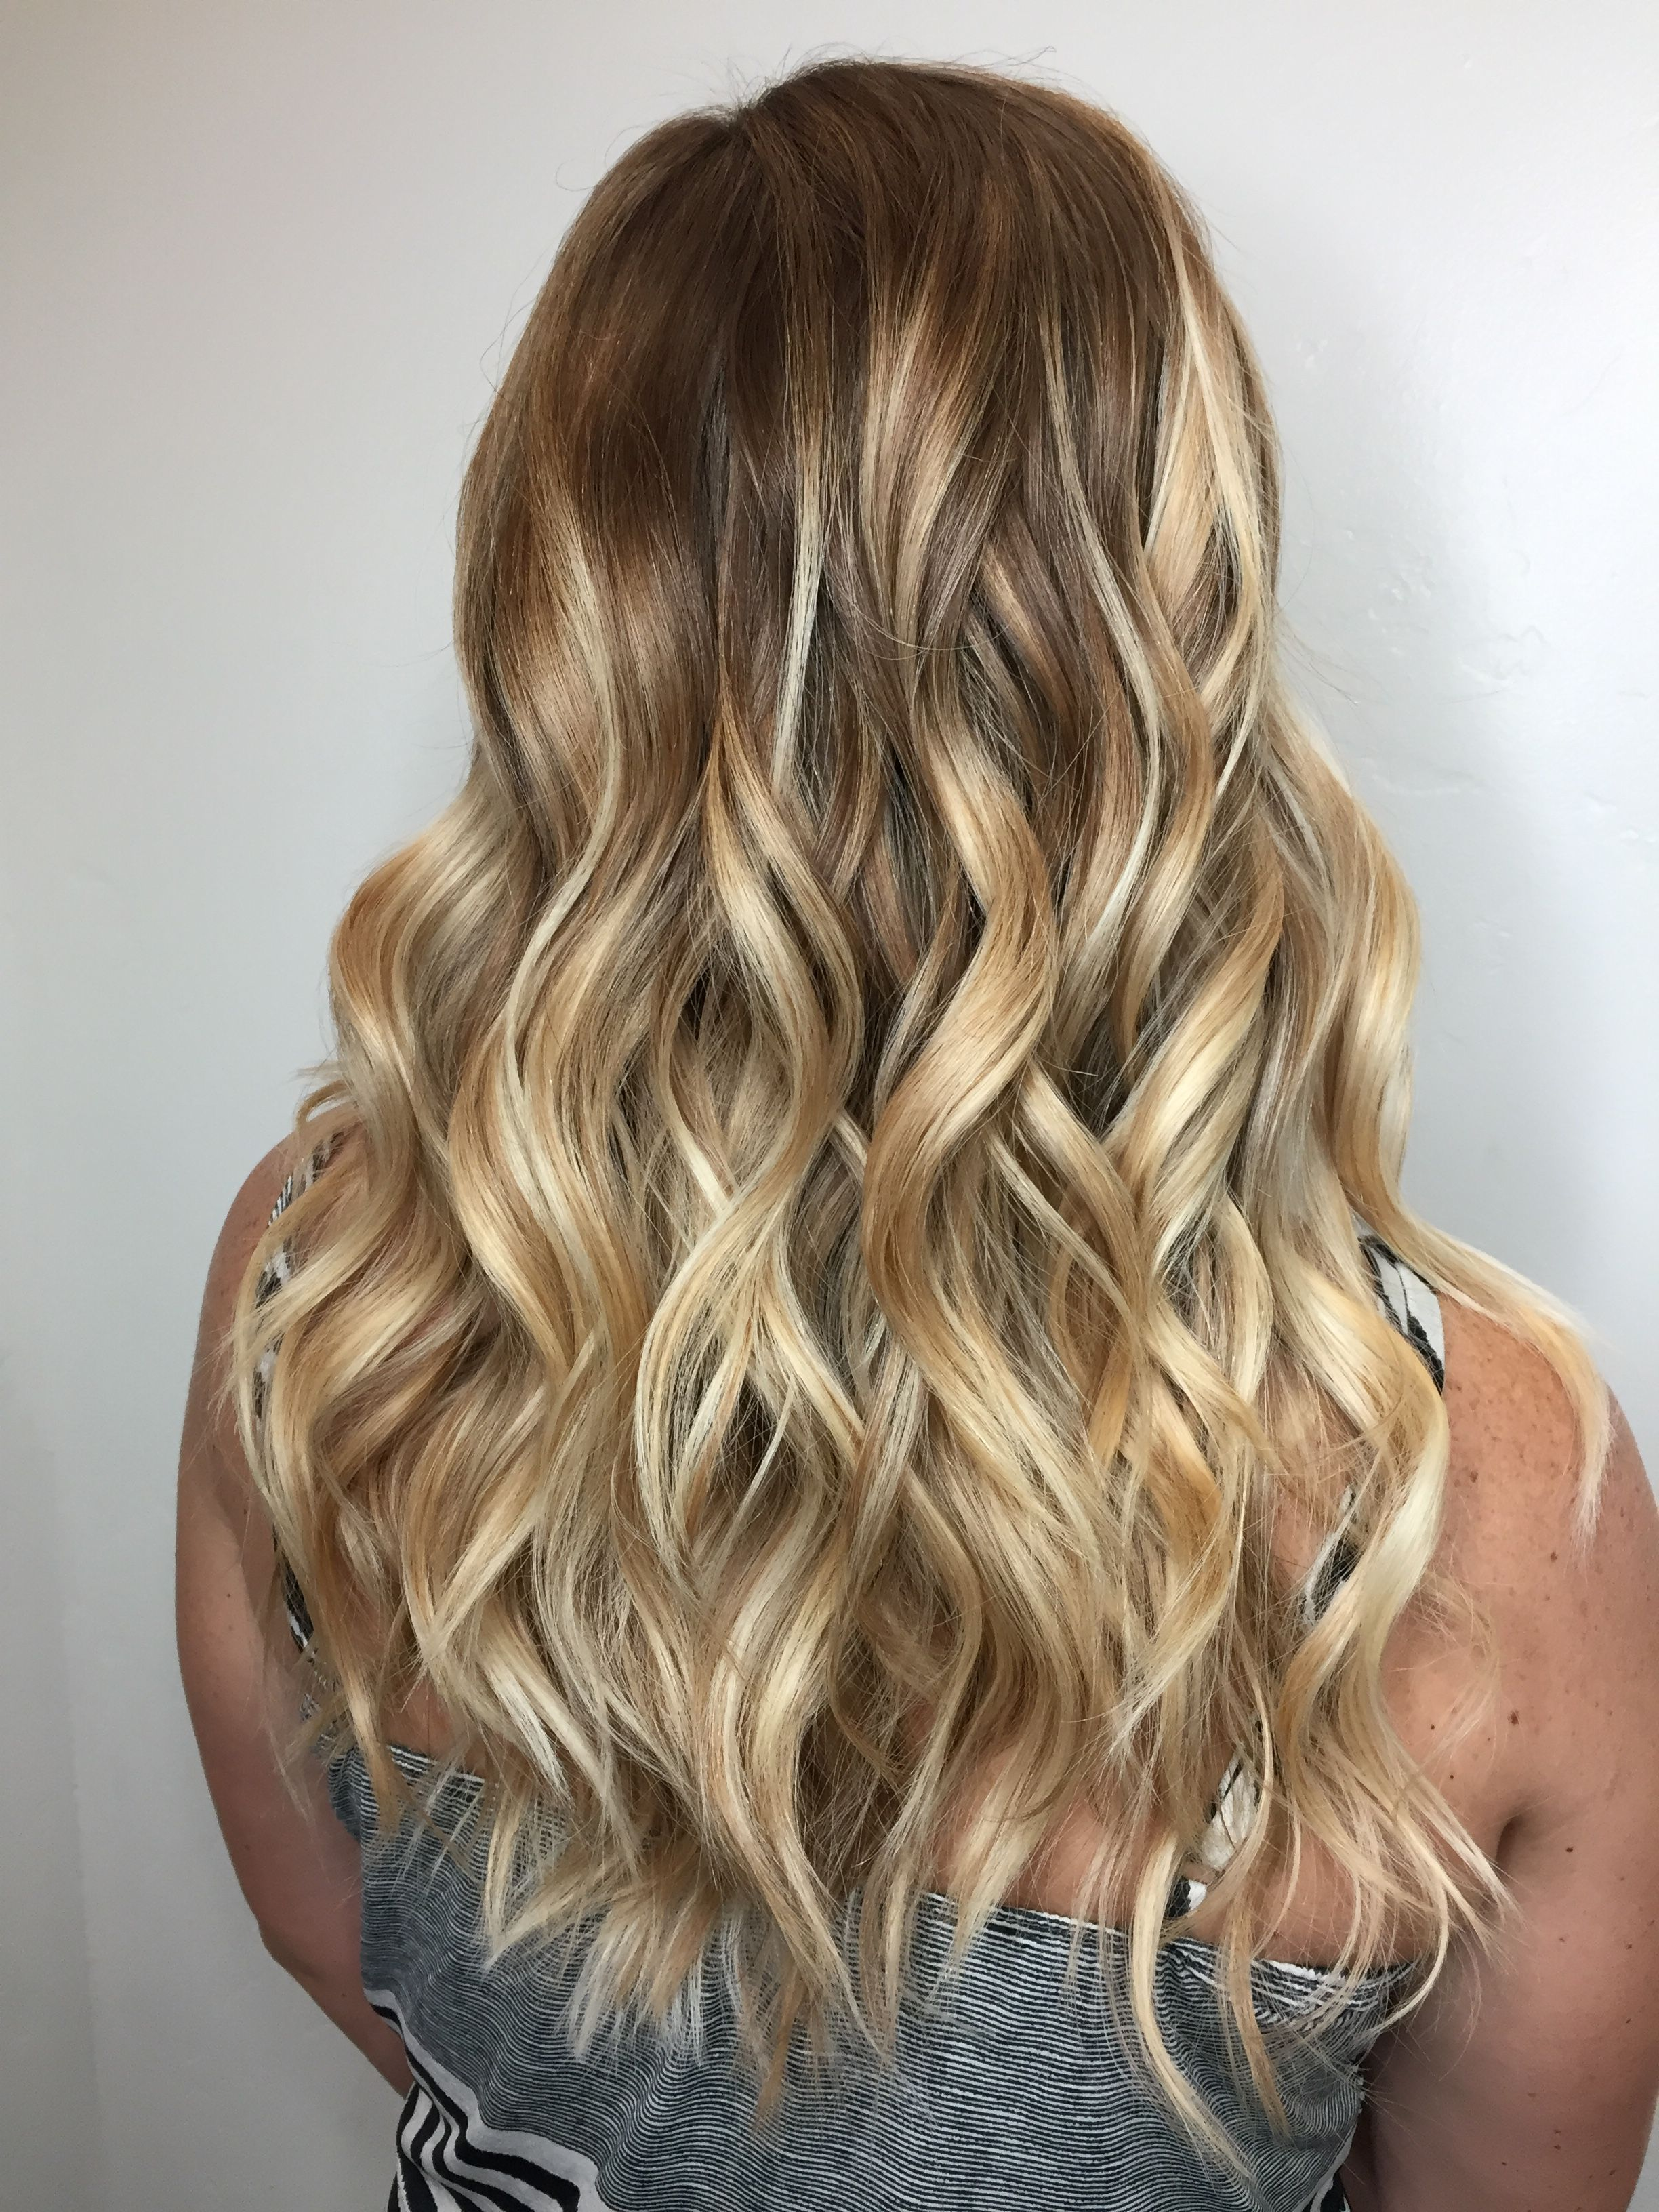 Wheat Blonde Root Shadow And Balayage On Long Layers Haircut For